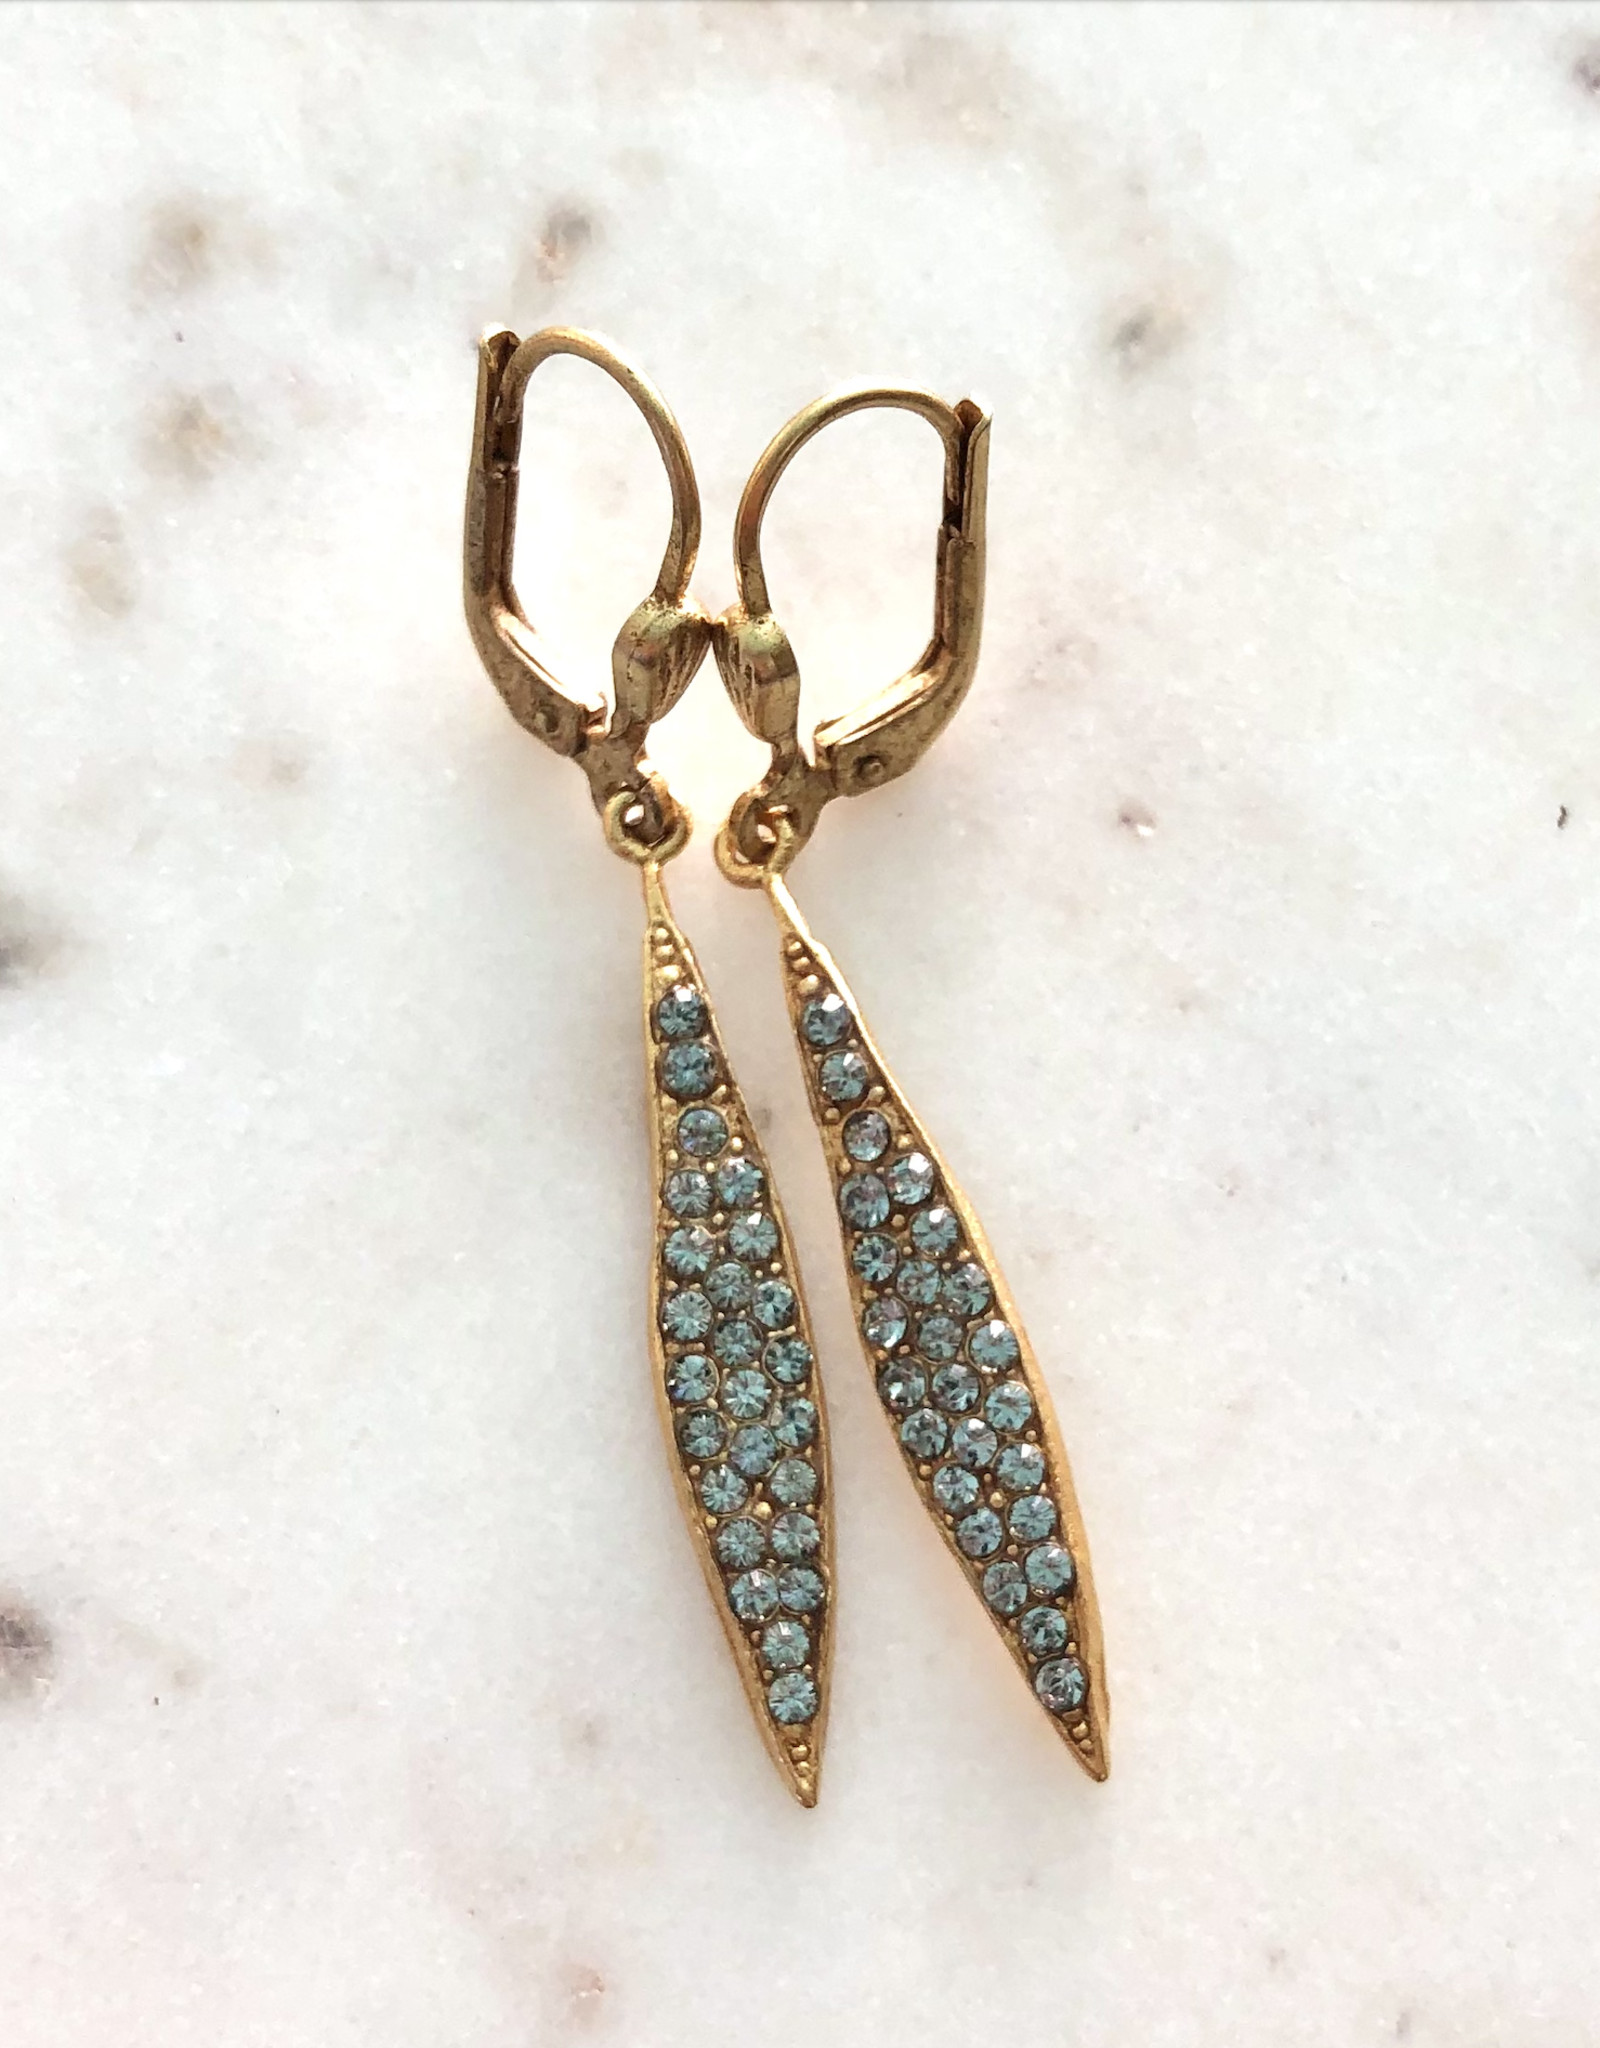 EARRING SPEAR WITH CRYSTALS ON FRENCH HOOK GOLD